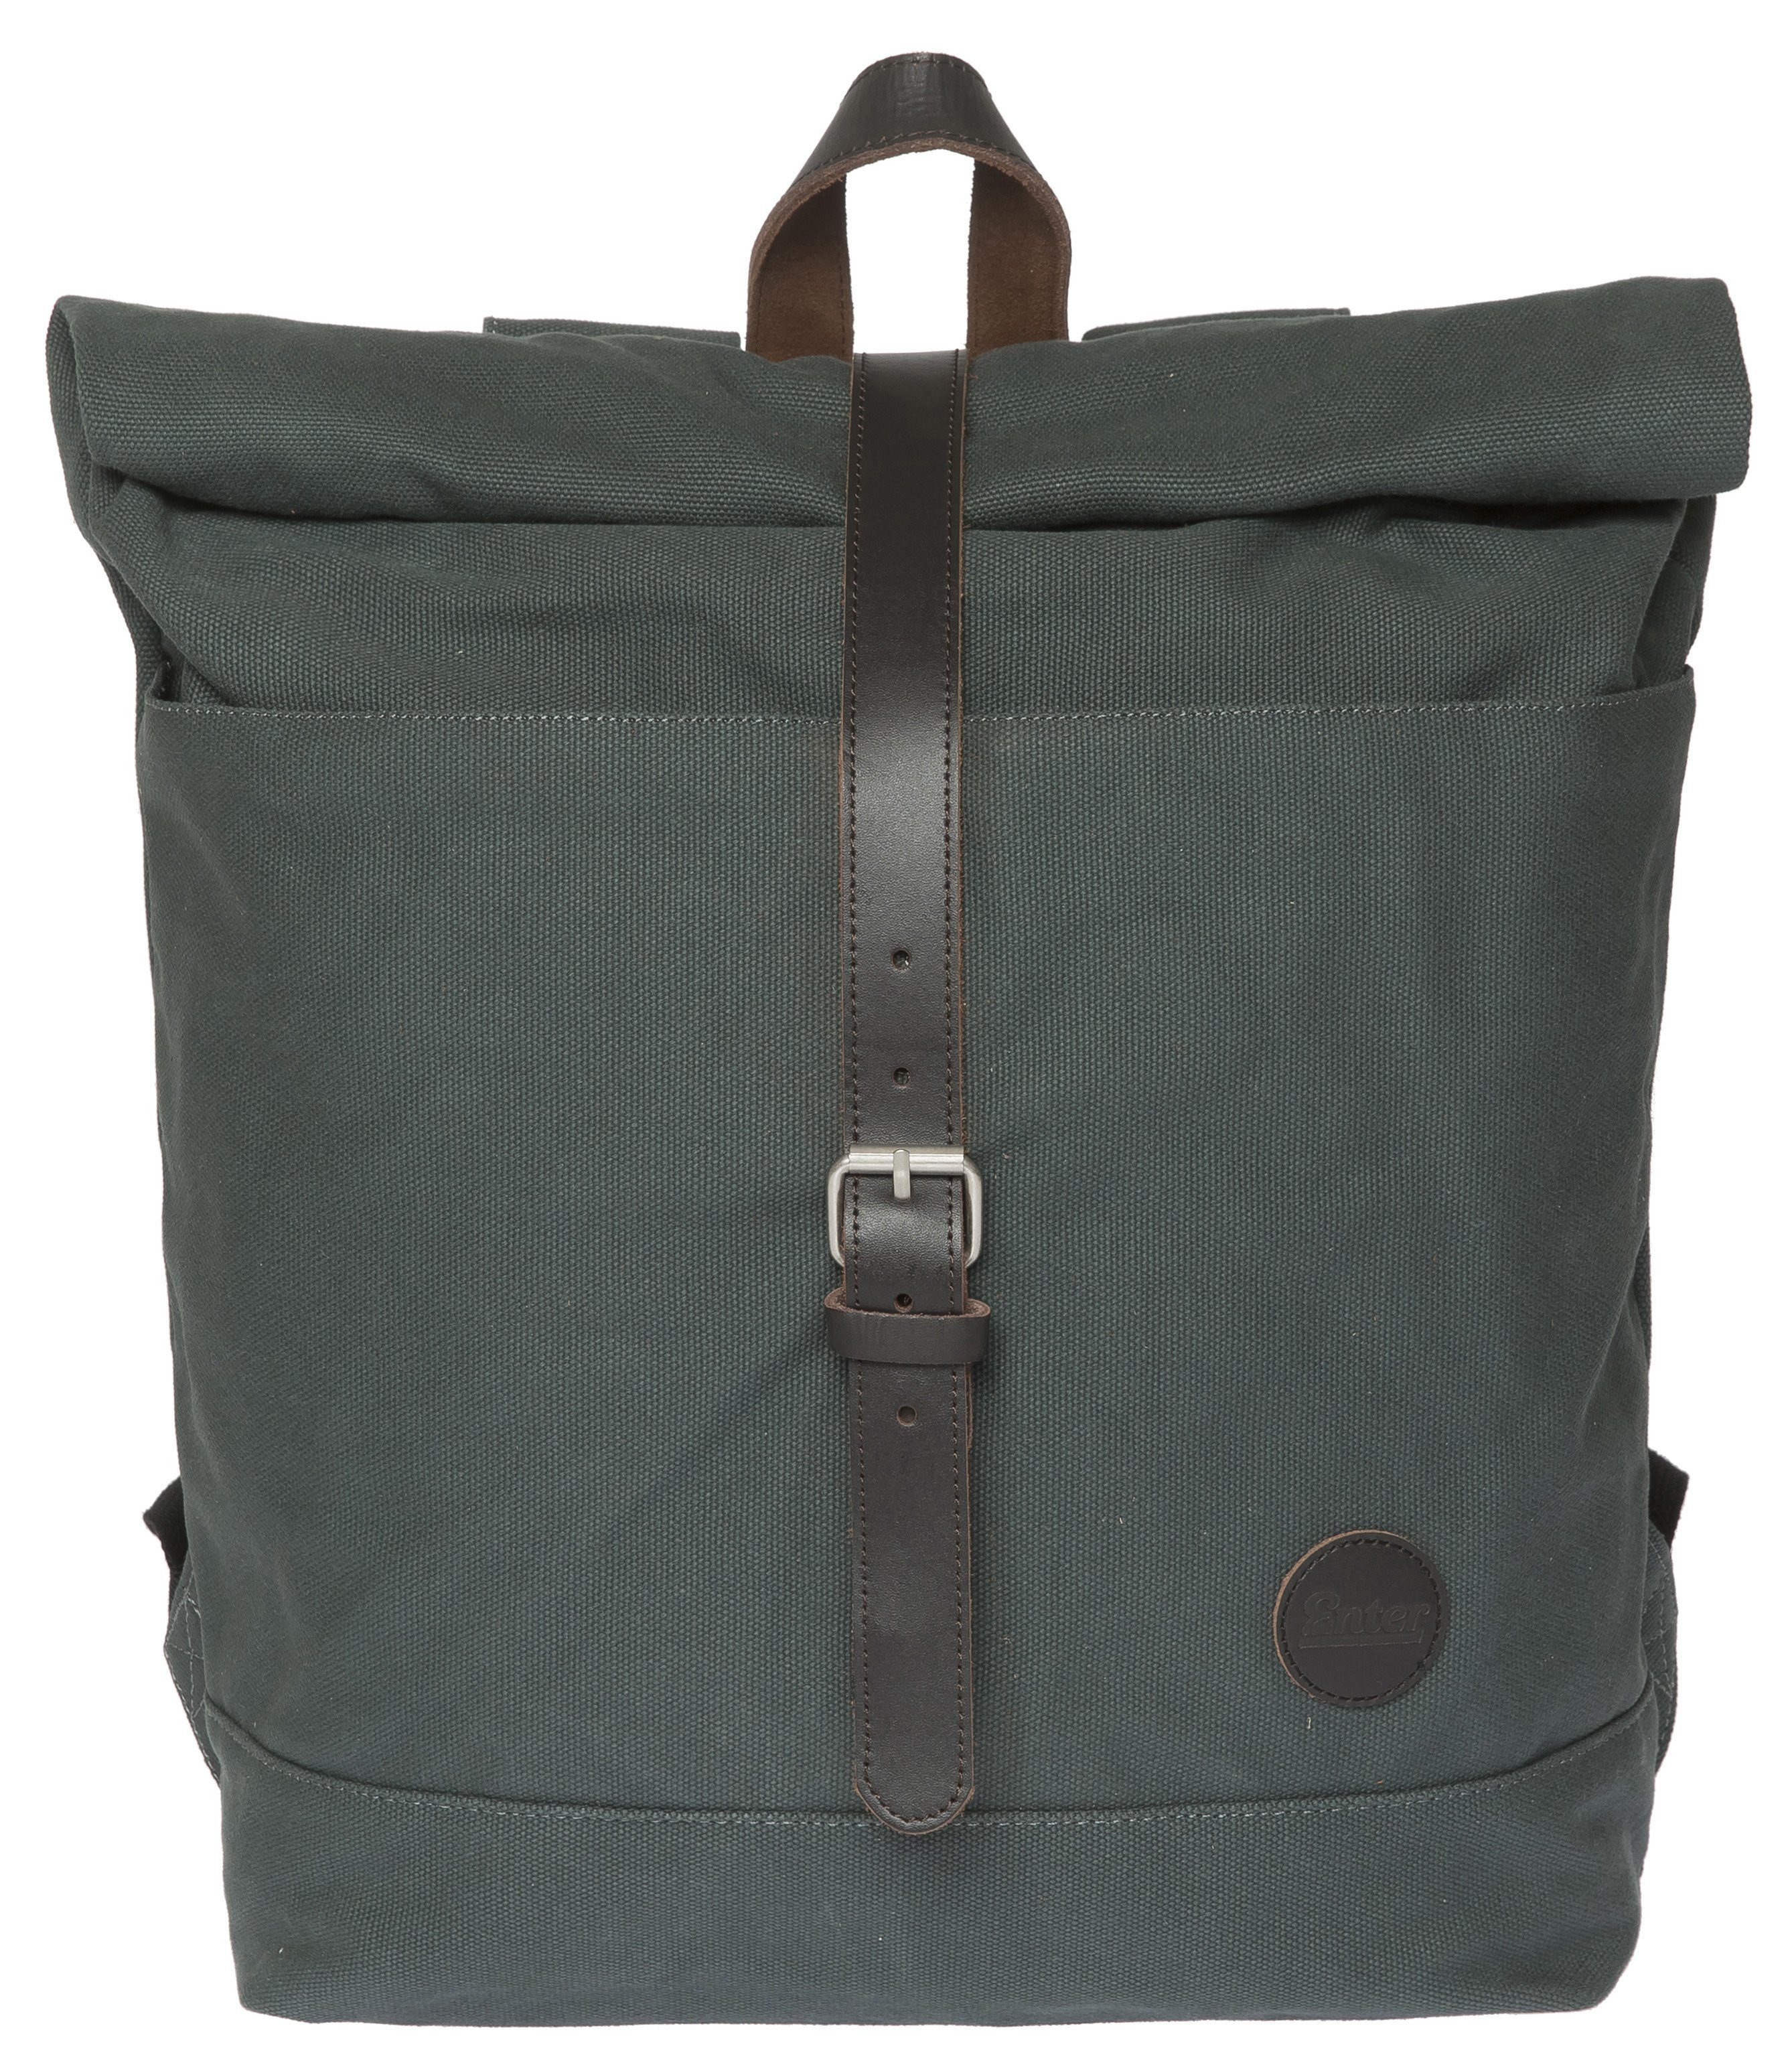 Enter Rucksack mit Aufroll-Verschluss, »Roll Top Backpack, Army Green/Dark Brown Leather«